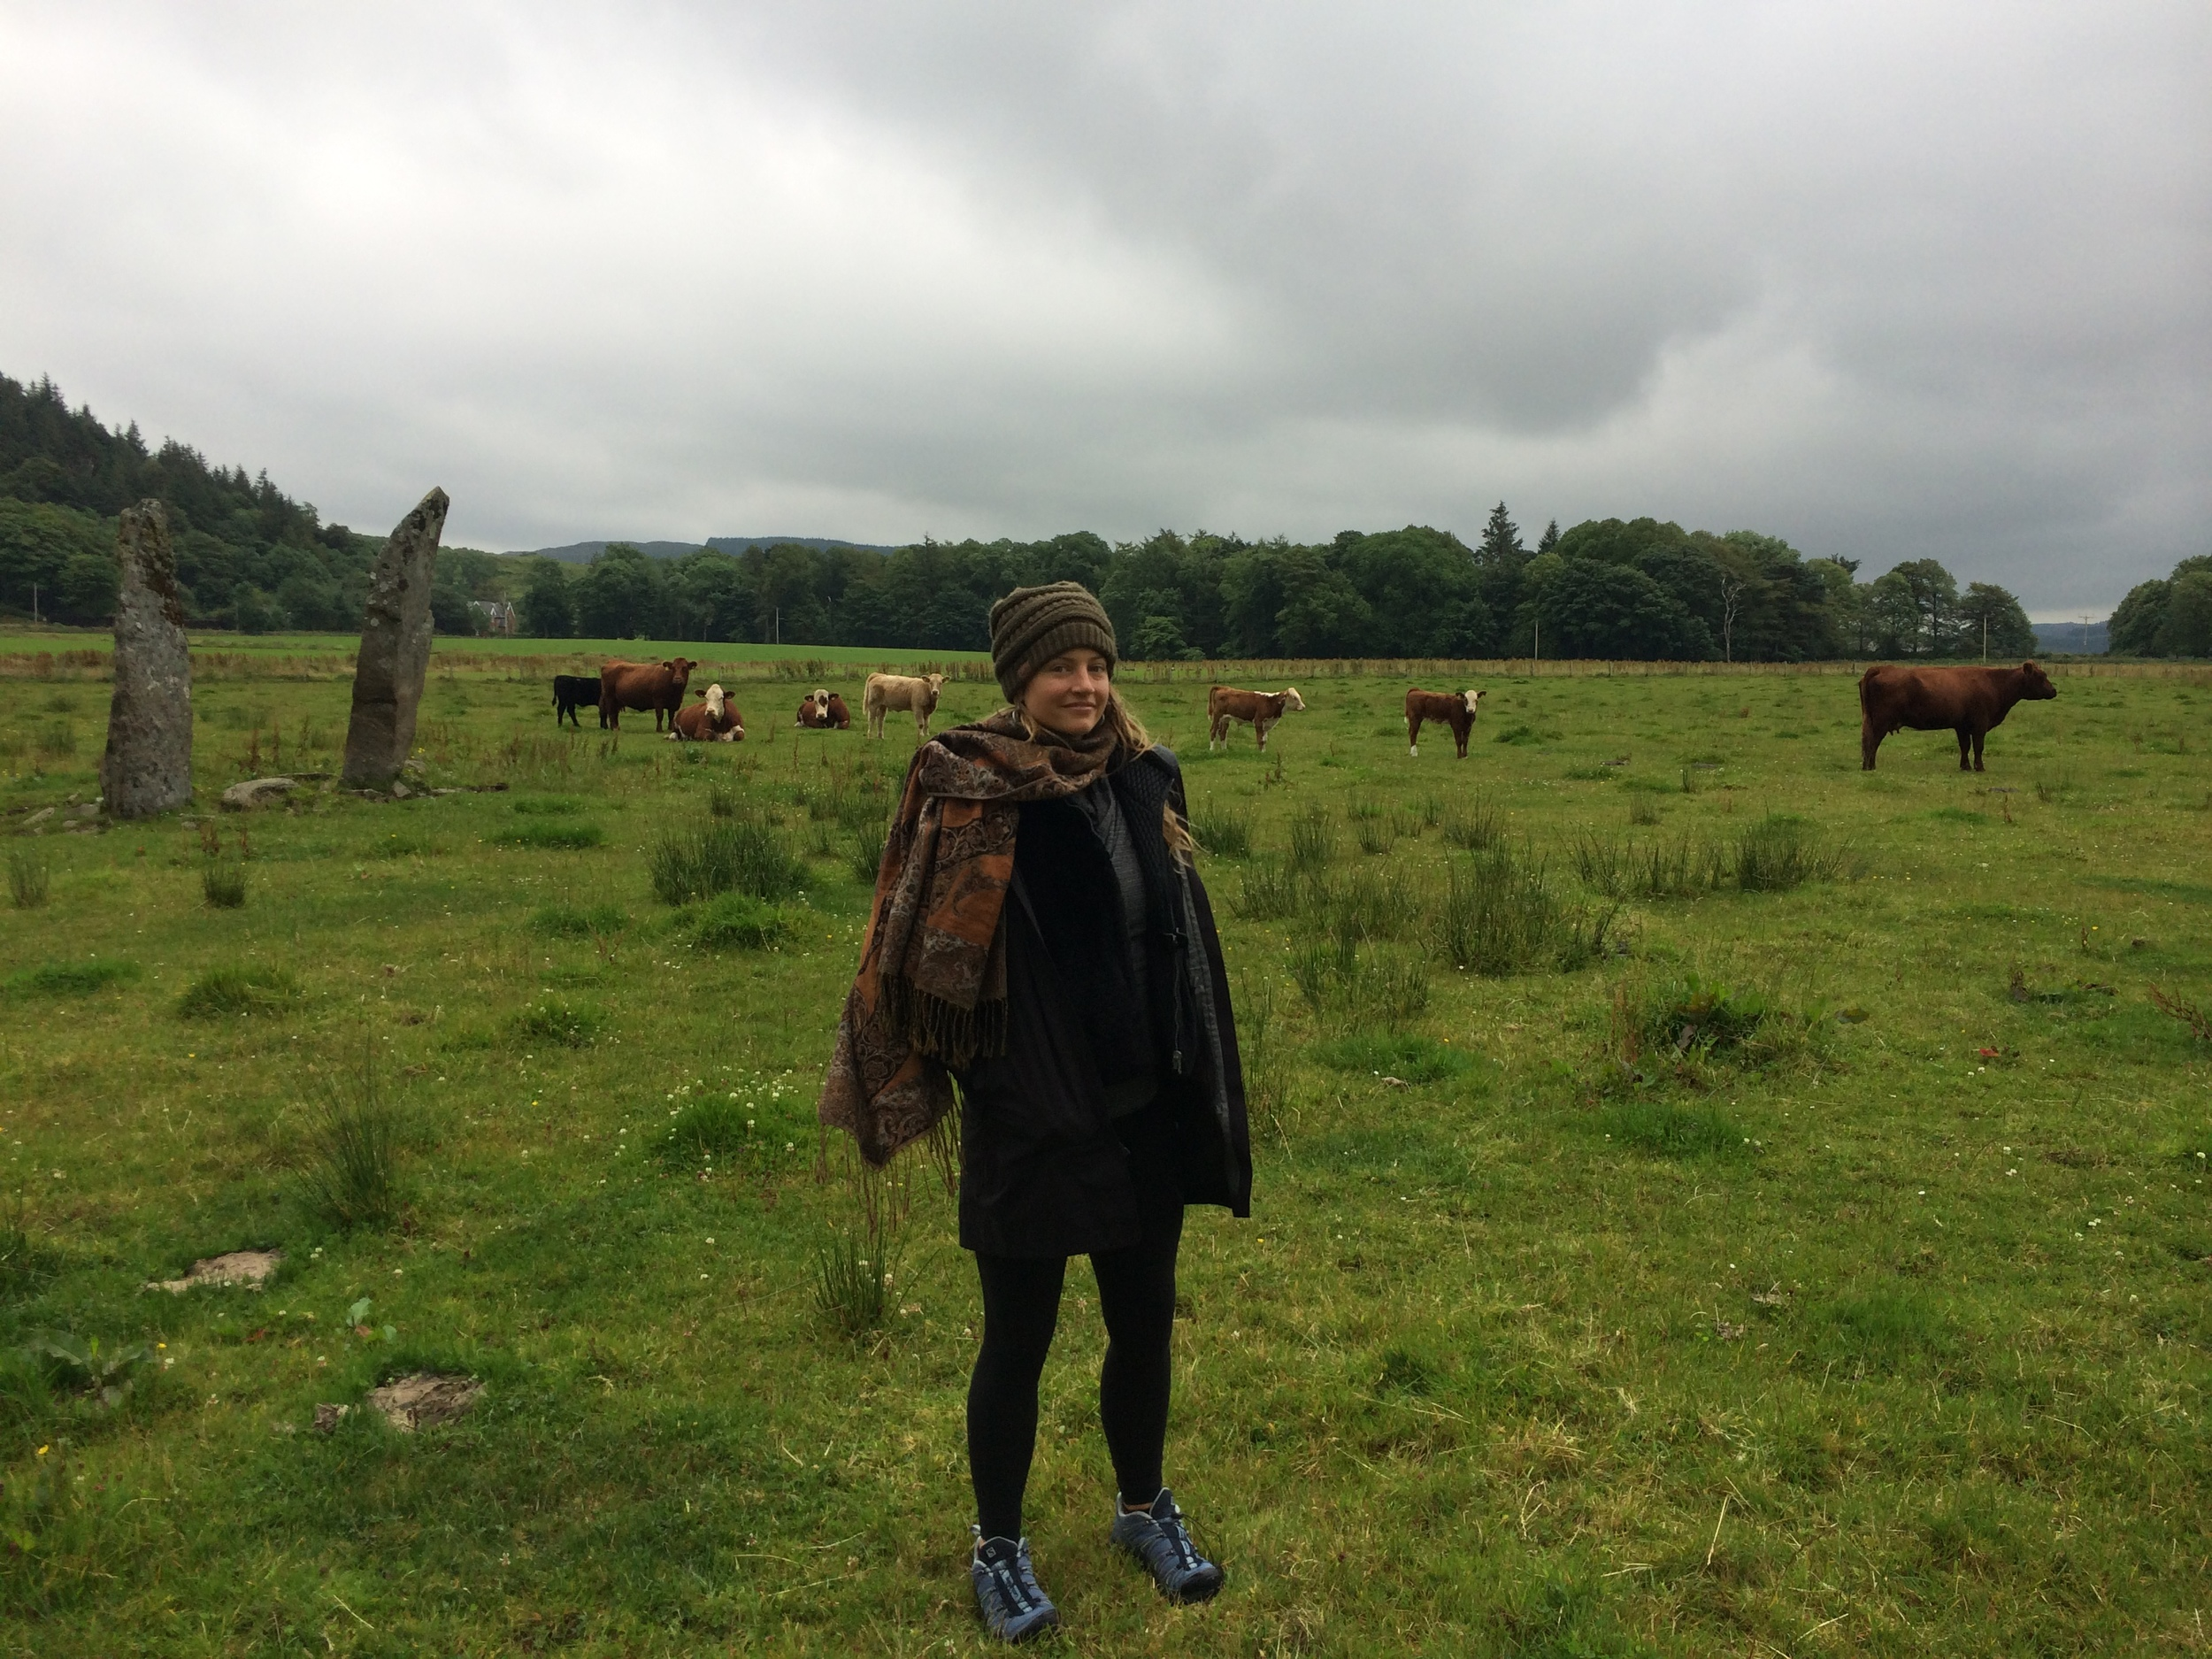 Me and an impressive circle of standing stones in a random cow field in Kilmartin.